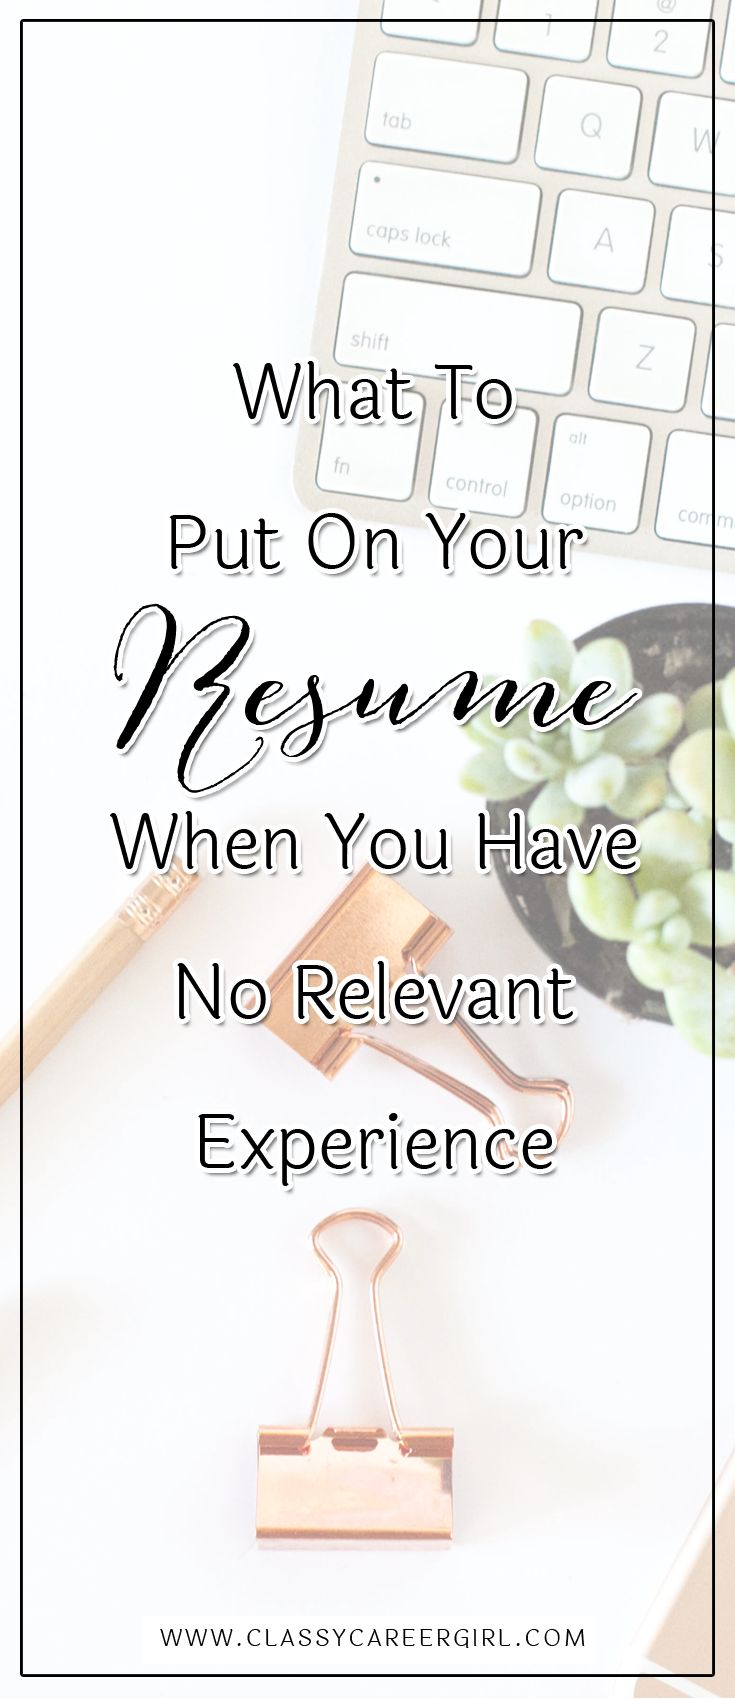 What To Put On Your Resume When You Have No Relevant Experience  Before everything else, read this to jumpstart your job application, especially if you are still writing your resume.  Read more: http://www.classycareergirl.com/2016/12/experience-relevant-resume-tips/ #Resumetips